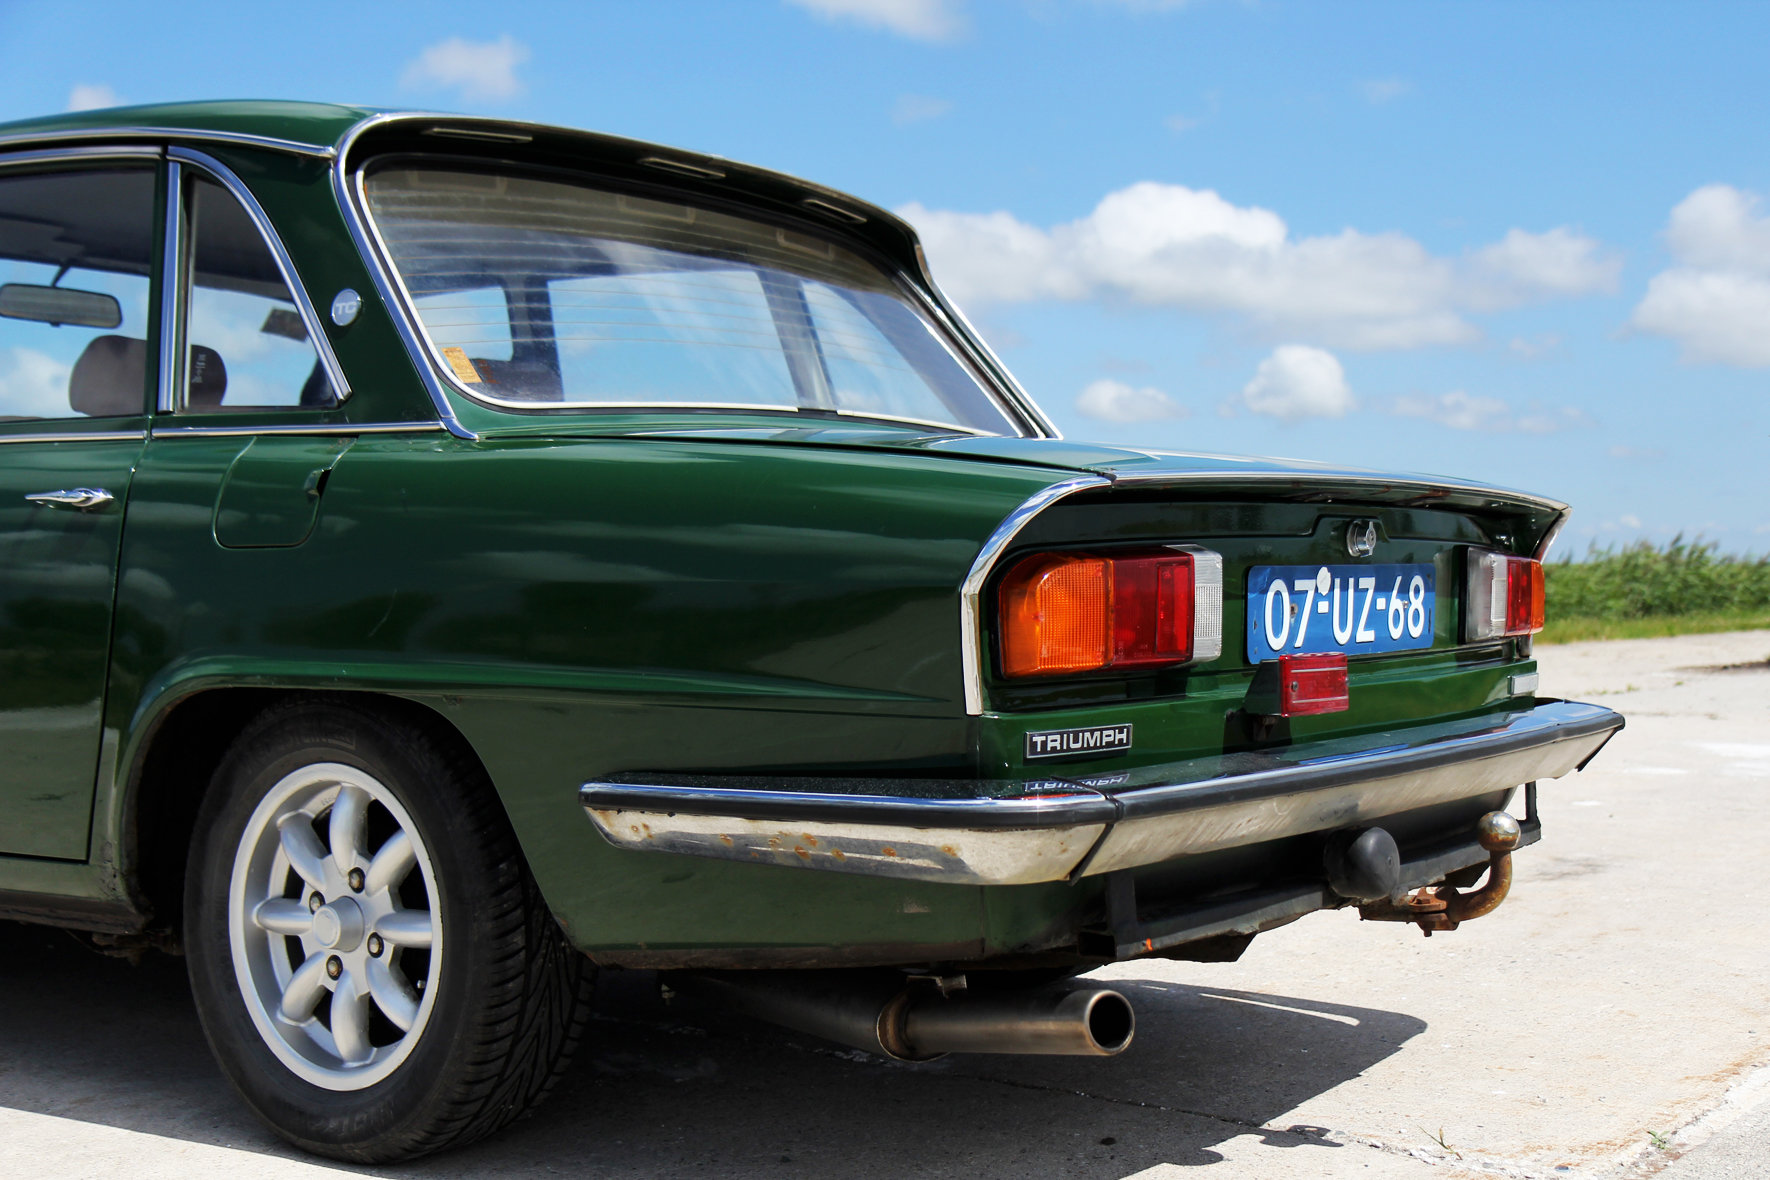 1978 Triumph 2500 TC Saloon overdrive LHD For Sale (picture 6 of 6)